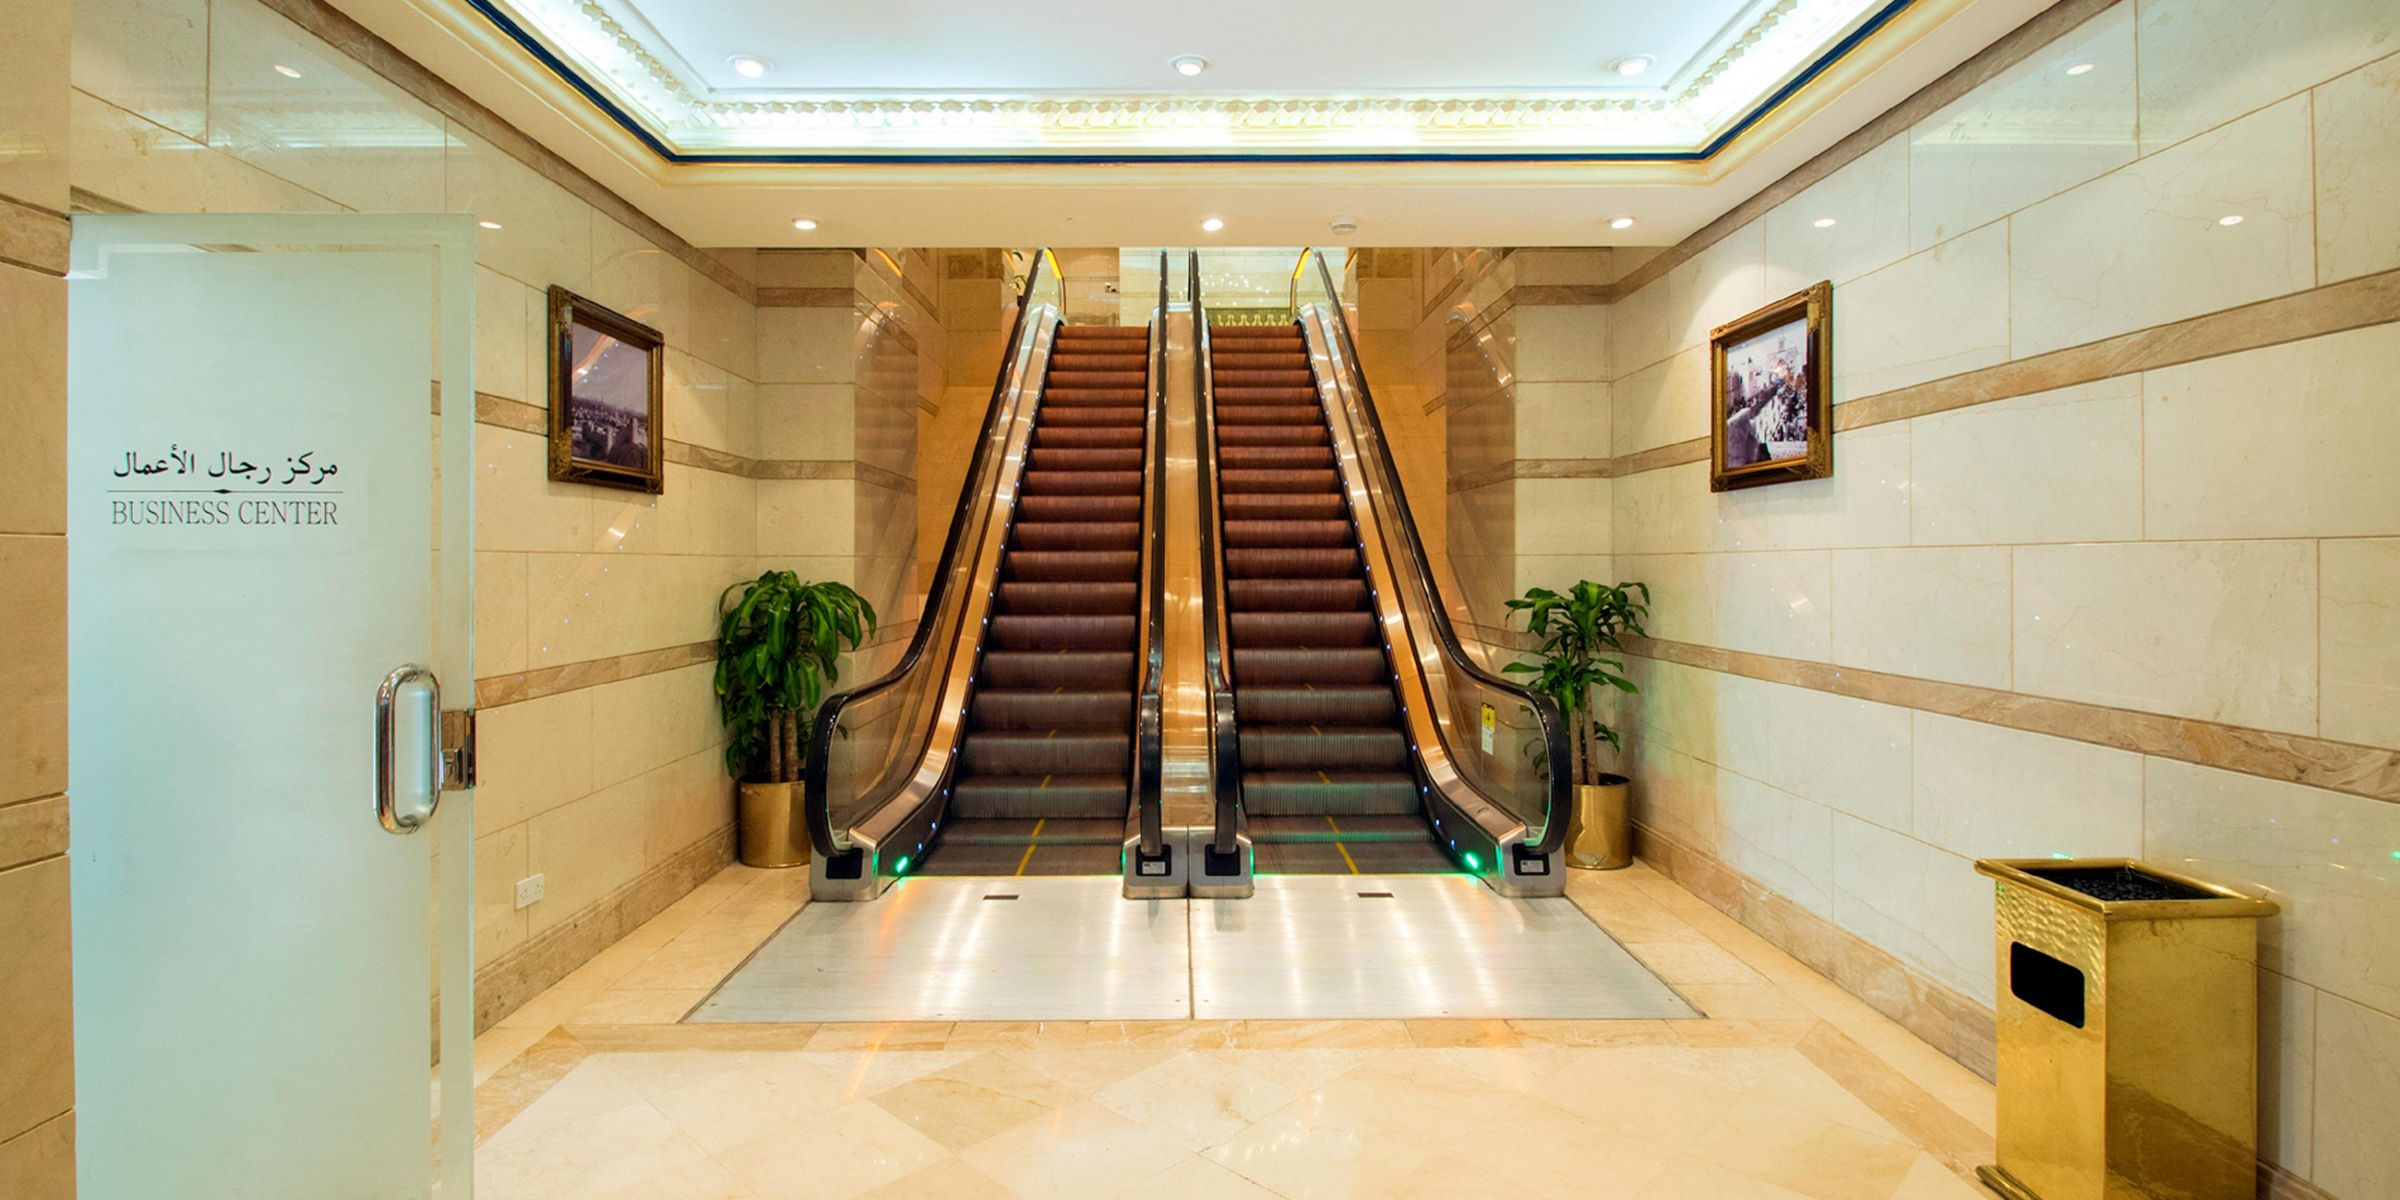 Al Mukhtara International Hotel Madinah Al Mounawarah Hotels Intercontinental Dar Al Hijra